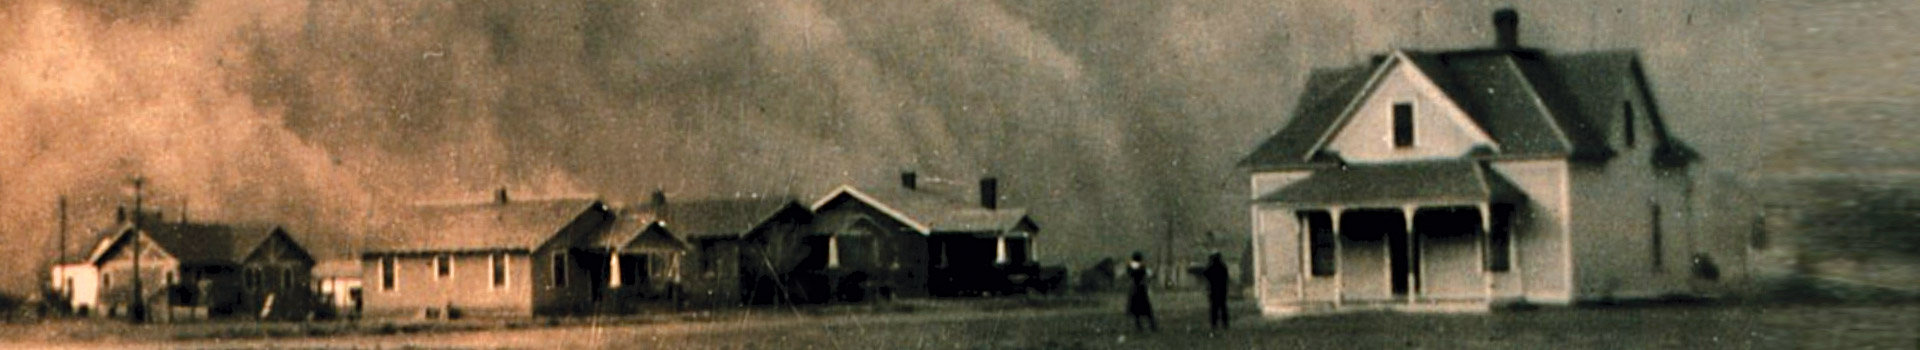 dust bowl dbq The dust bowl was a drought and heat wave that destroyed crops in the midwest in the 1930s it worsened the great depression and could happen again.